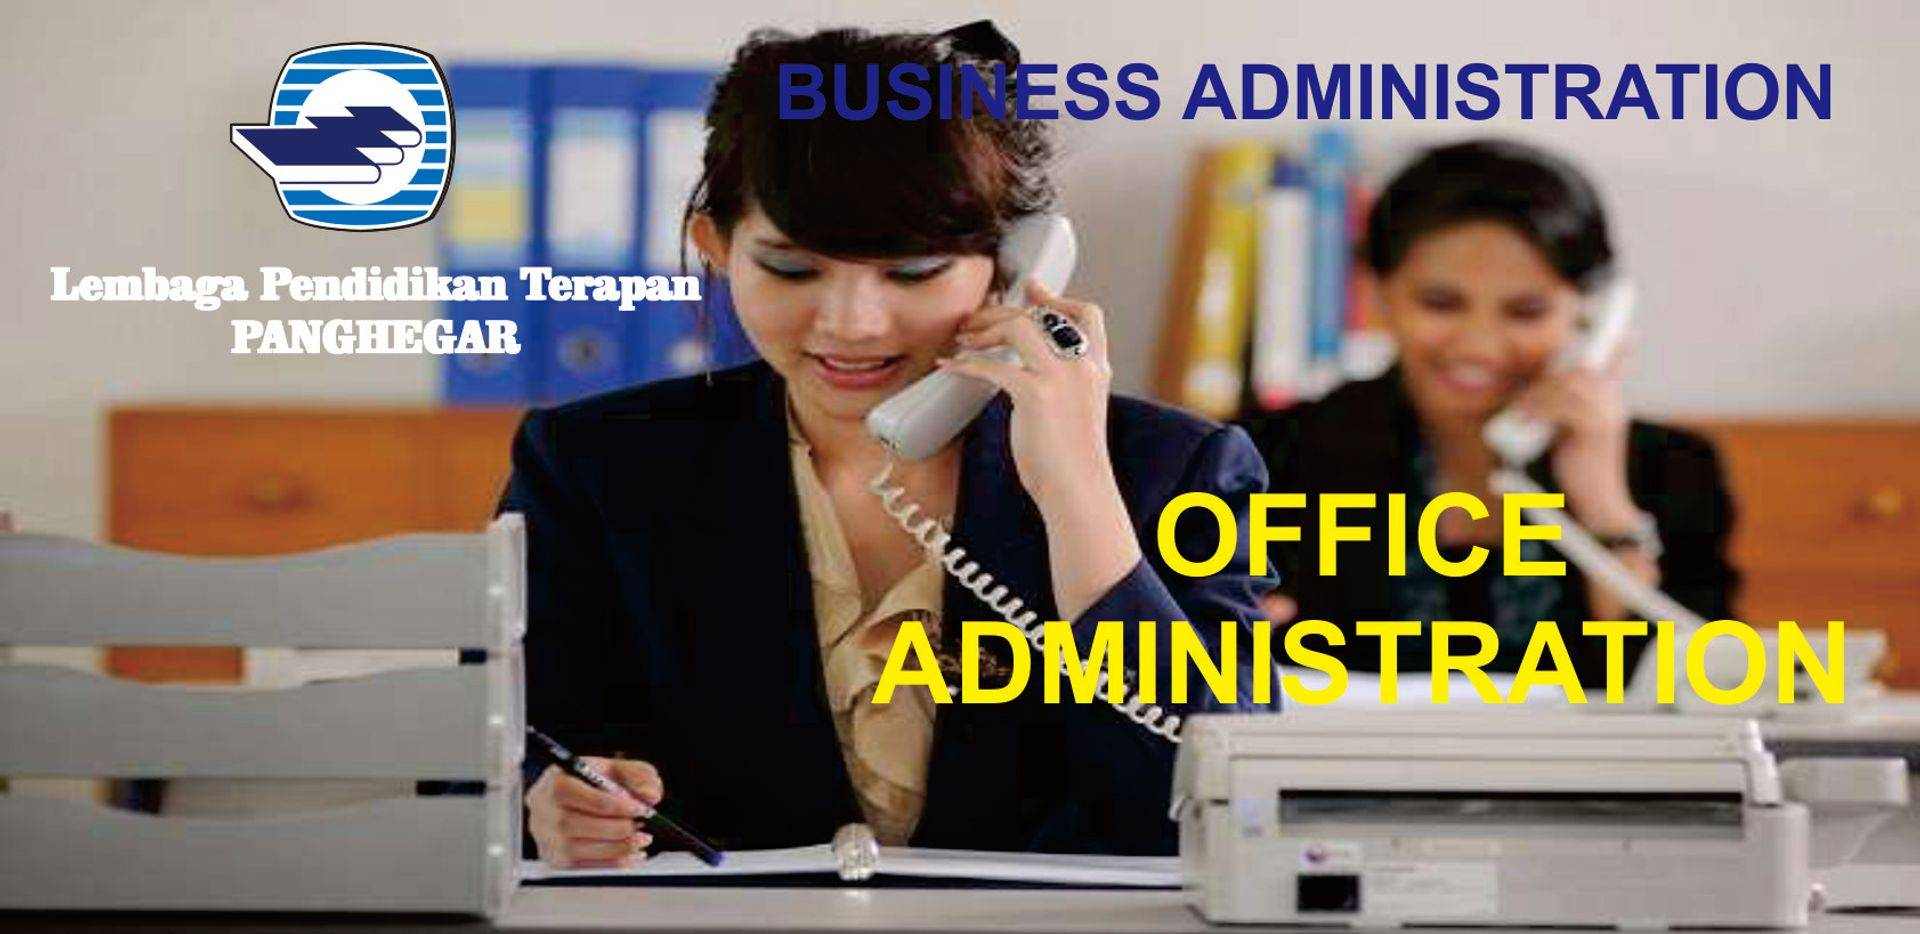 Office Administration - Administrasi Kantor